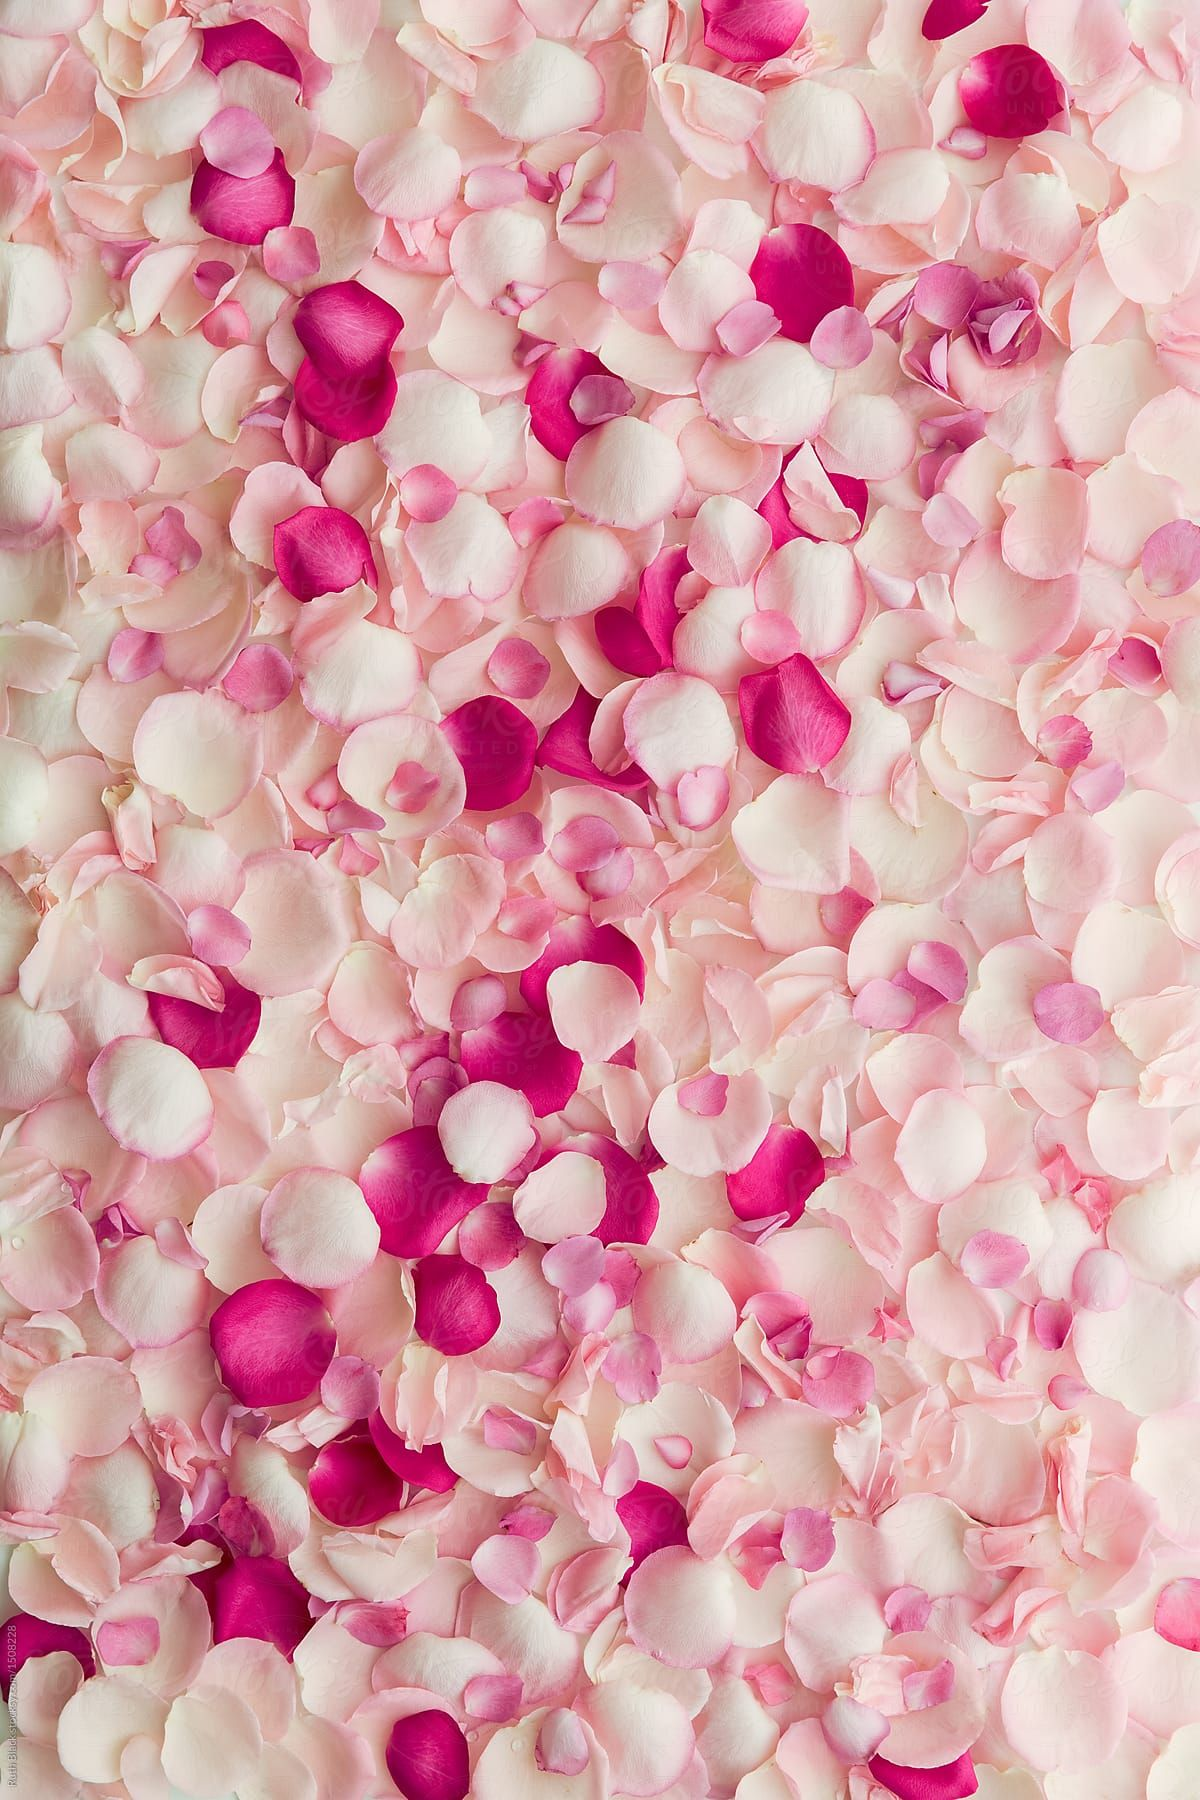 Rose Petal Background Download This High Resolution Stock Photo By